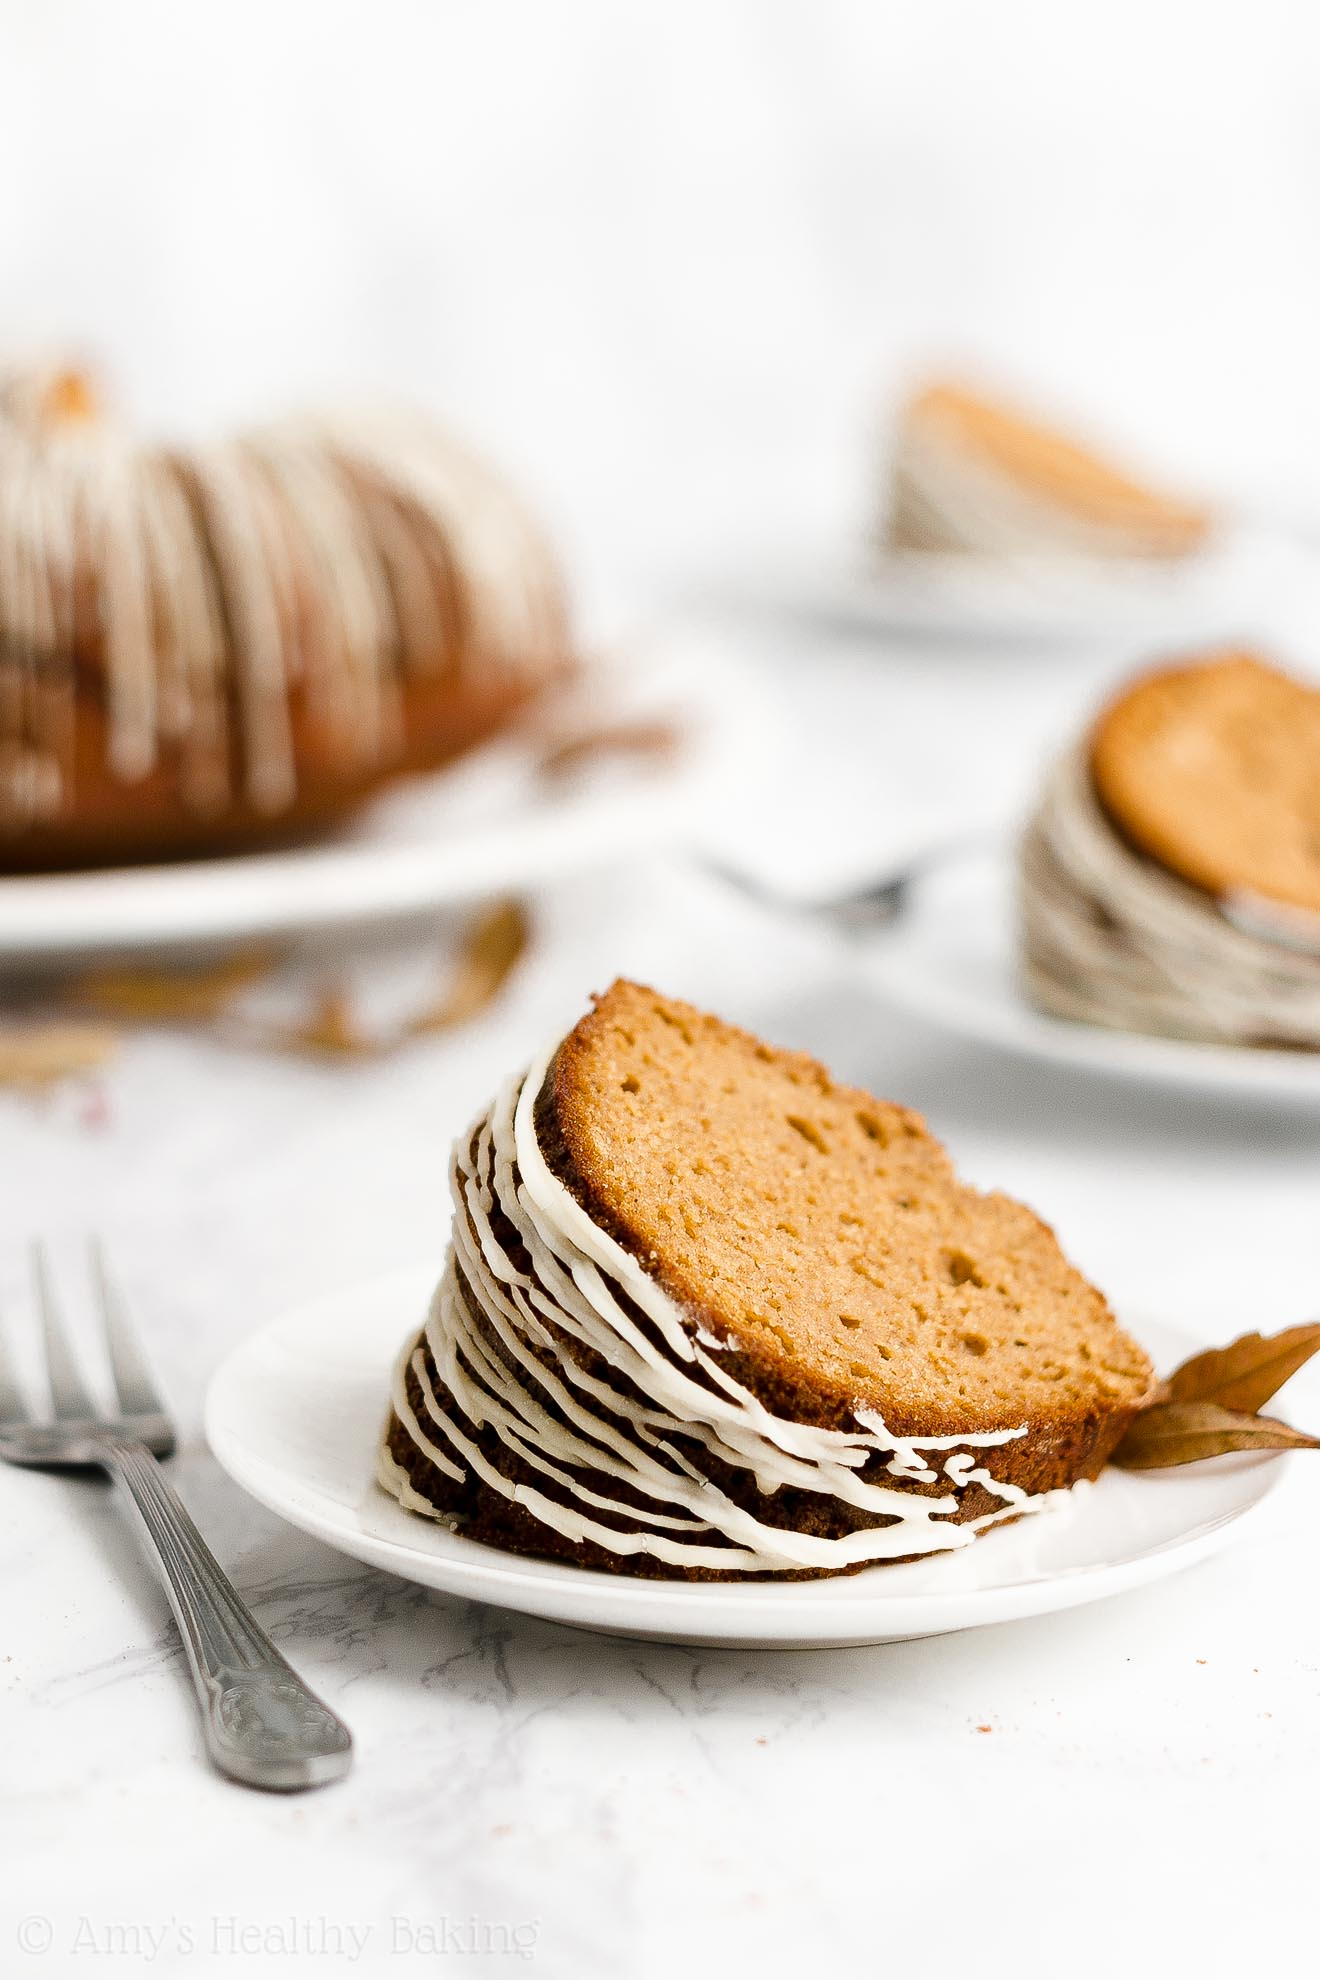 Ultimate Healthy Clean Eating Classic Molasses Gingerbread Bundt Cake with Glaze